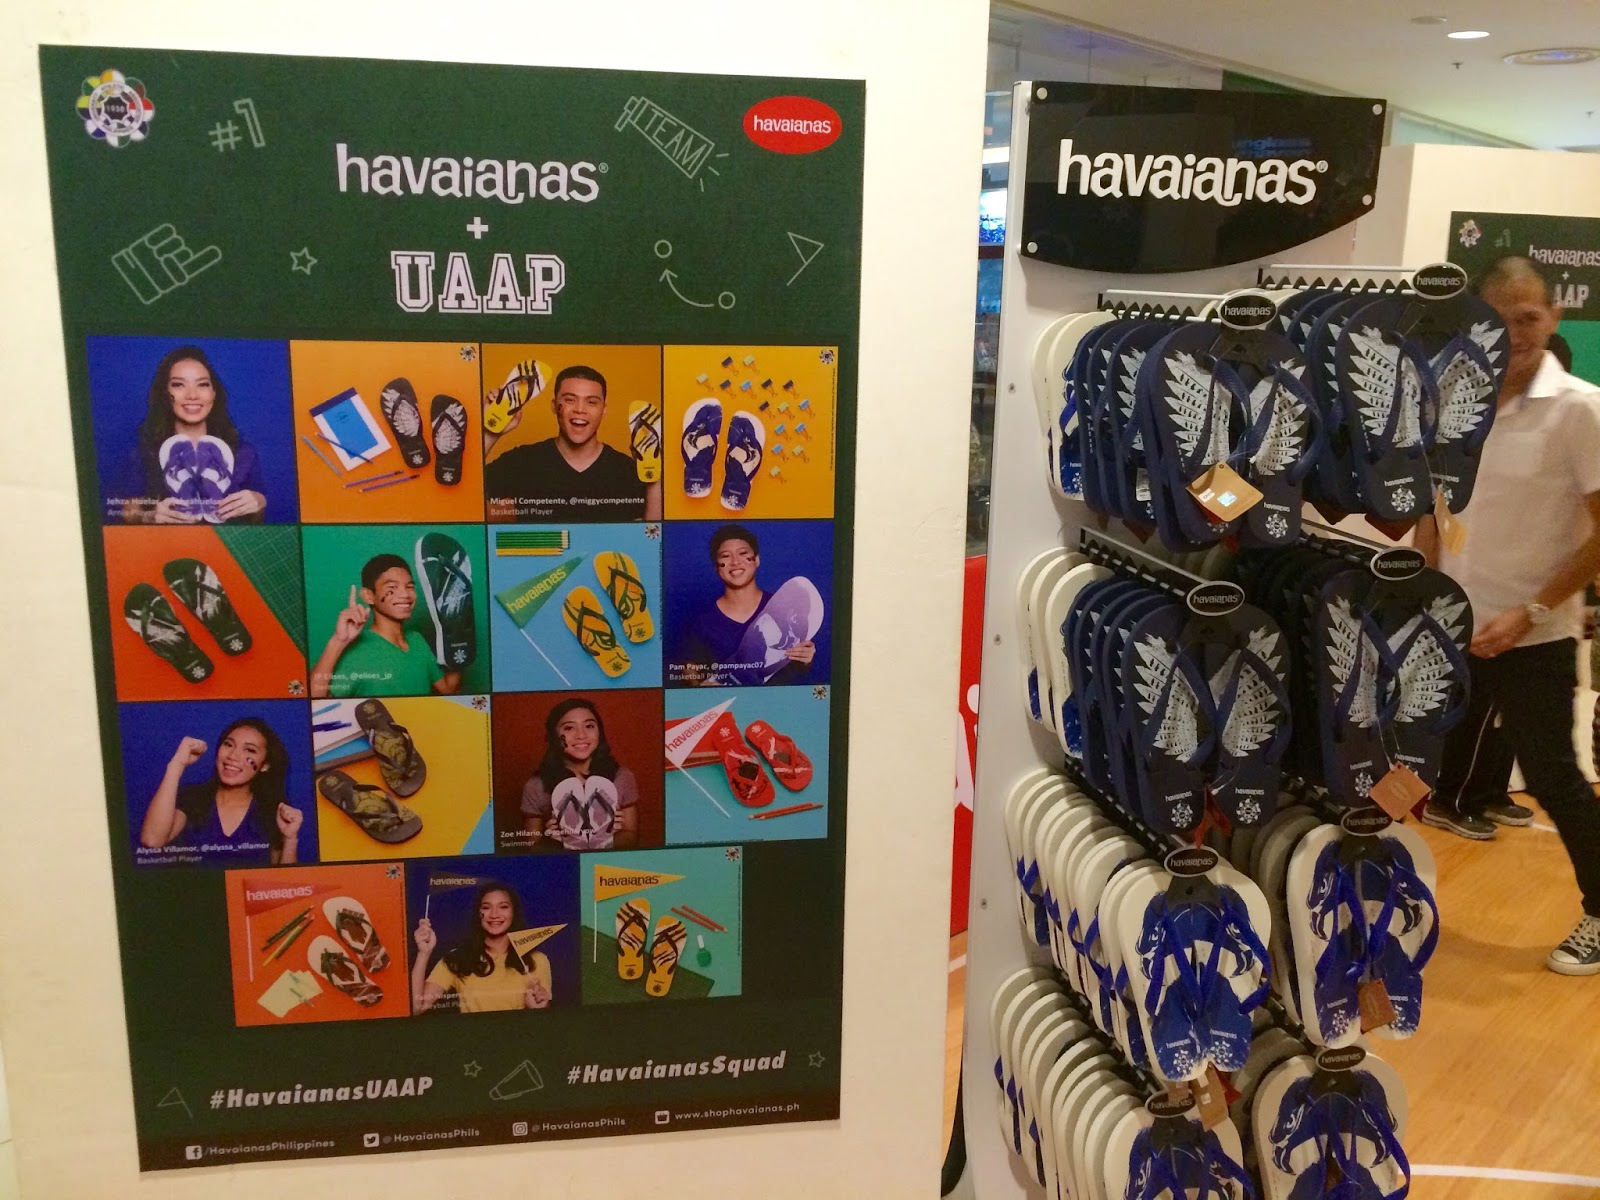 Havaianas + UAAP 2016 Pop-Up Shop and Photo Exhibit